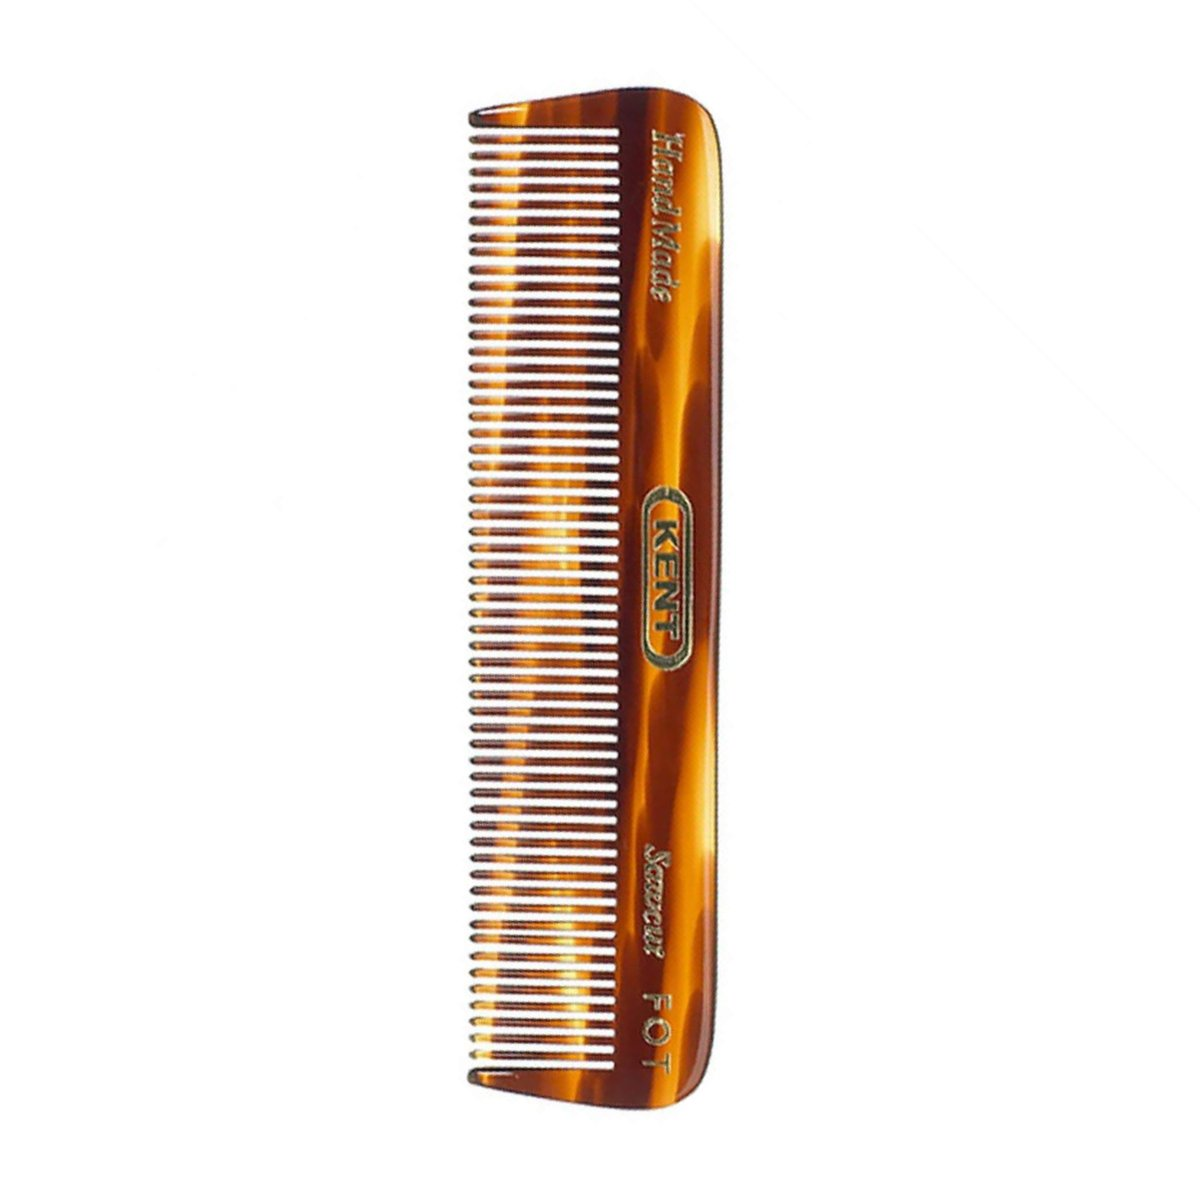 Kent Brothers - FOT Pocket Comb | WOLF'S HEAD